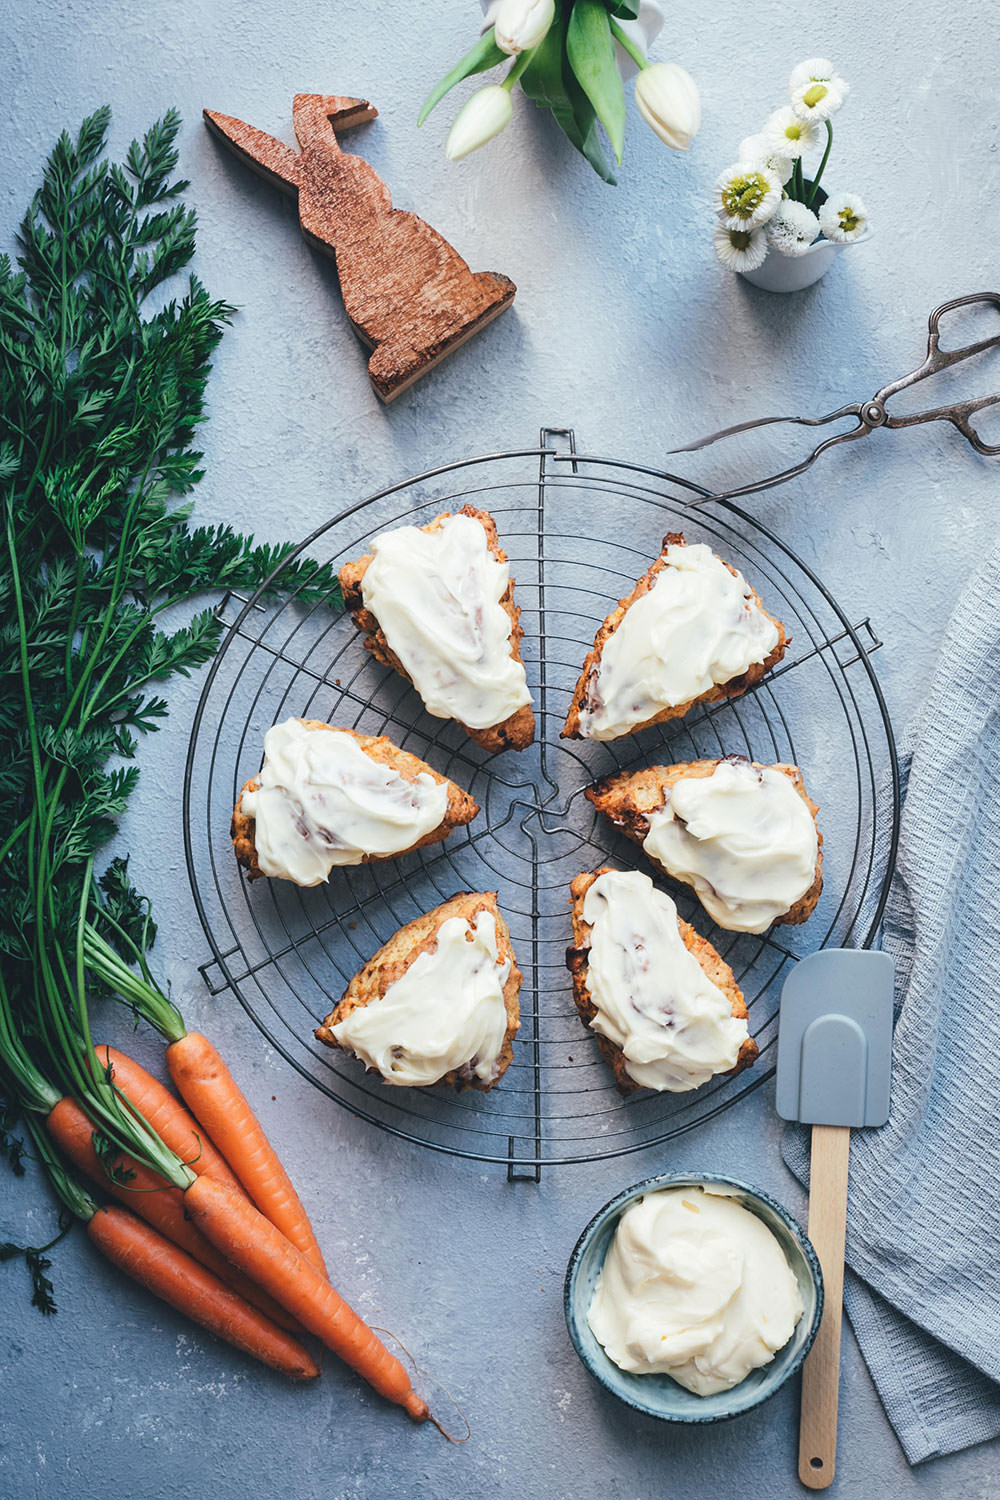 Rezept für saftige Carrot Cake Scones mit frischen Möhren, weißer Schokolade, knackigen Walnüssen und einem Frischkäse-Frosting | Food.Blog.Friends Osteredition | moeyskitchen.com #foodblogfriends #carrotcakescones #carrotcake #scones #ostern #osterbrunch #foodblogger #rezepte